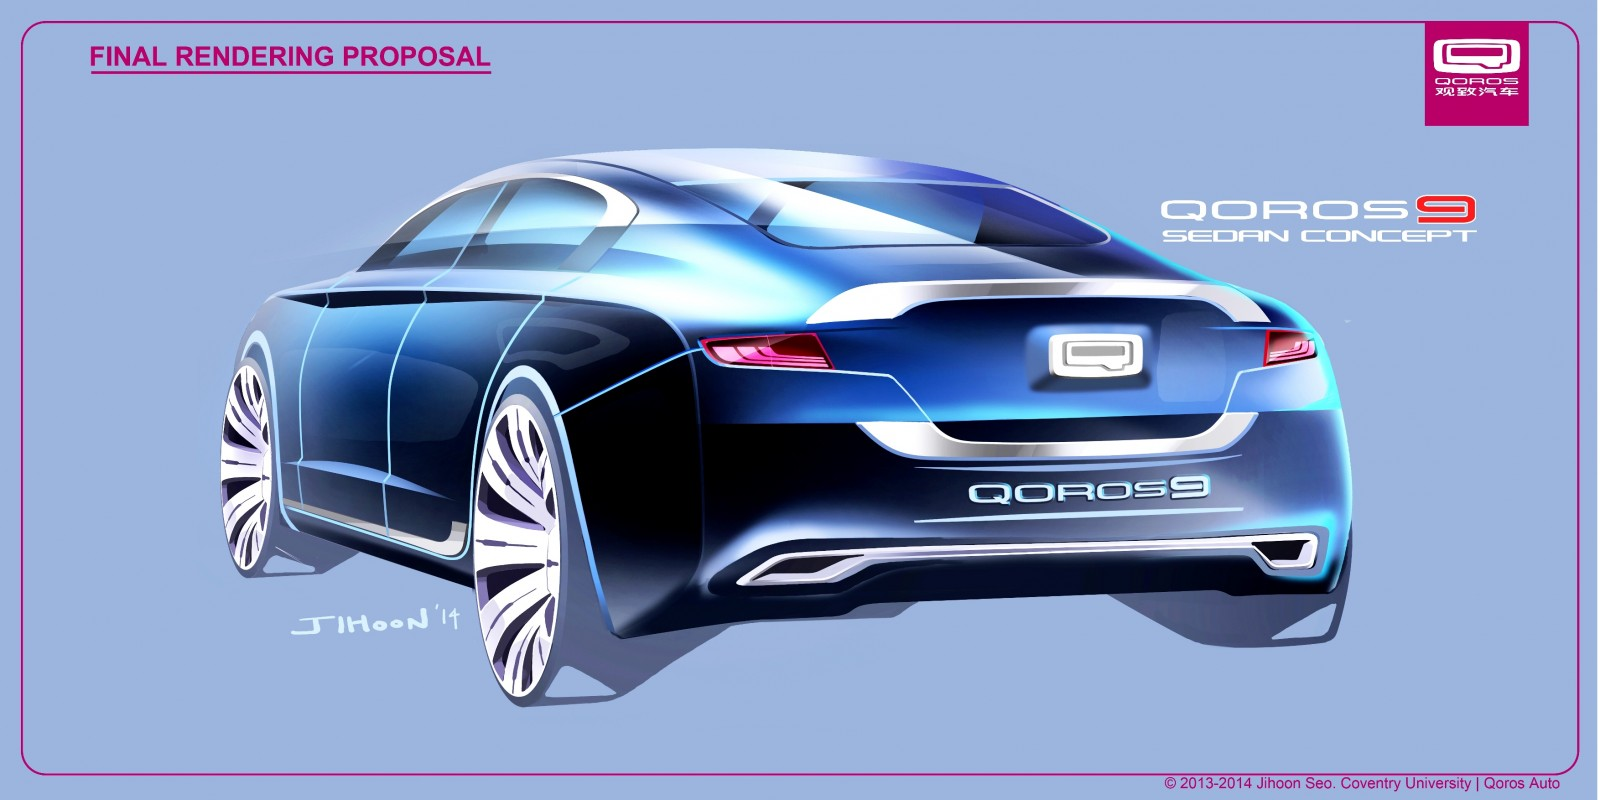 QOROS Is Little Brand With Big Ideas - Qoros9 and Flagship Concept Designs Maturing 8